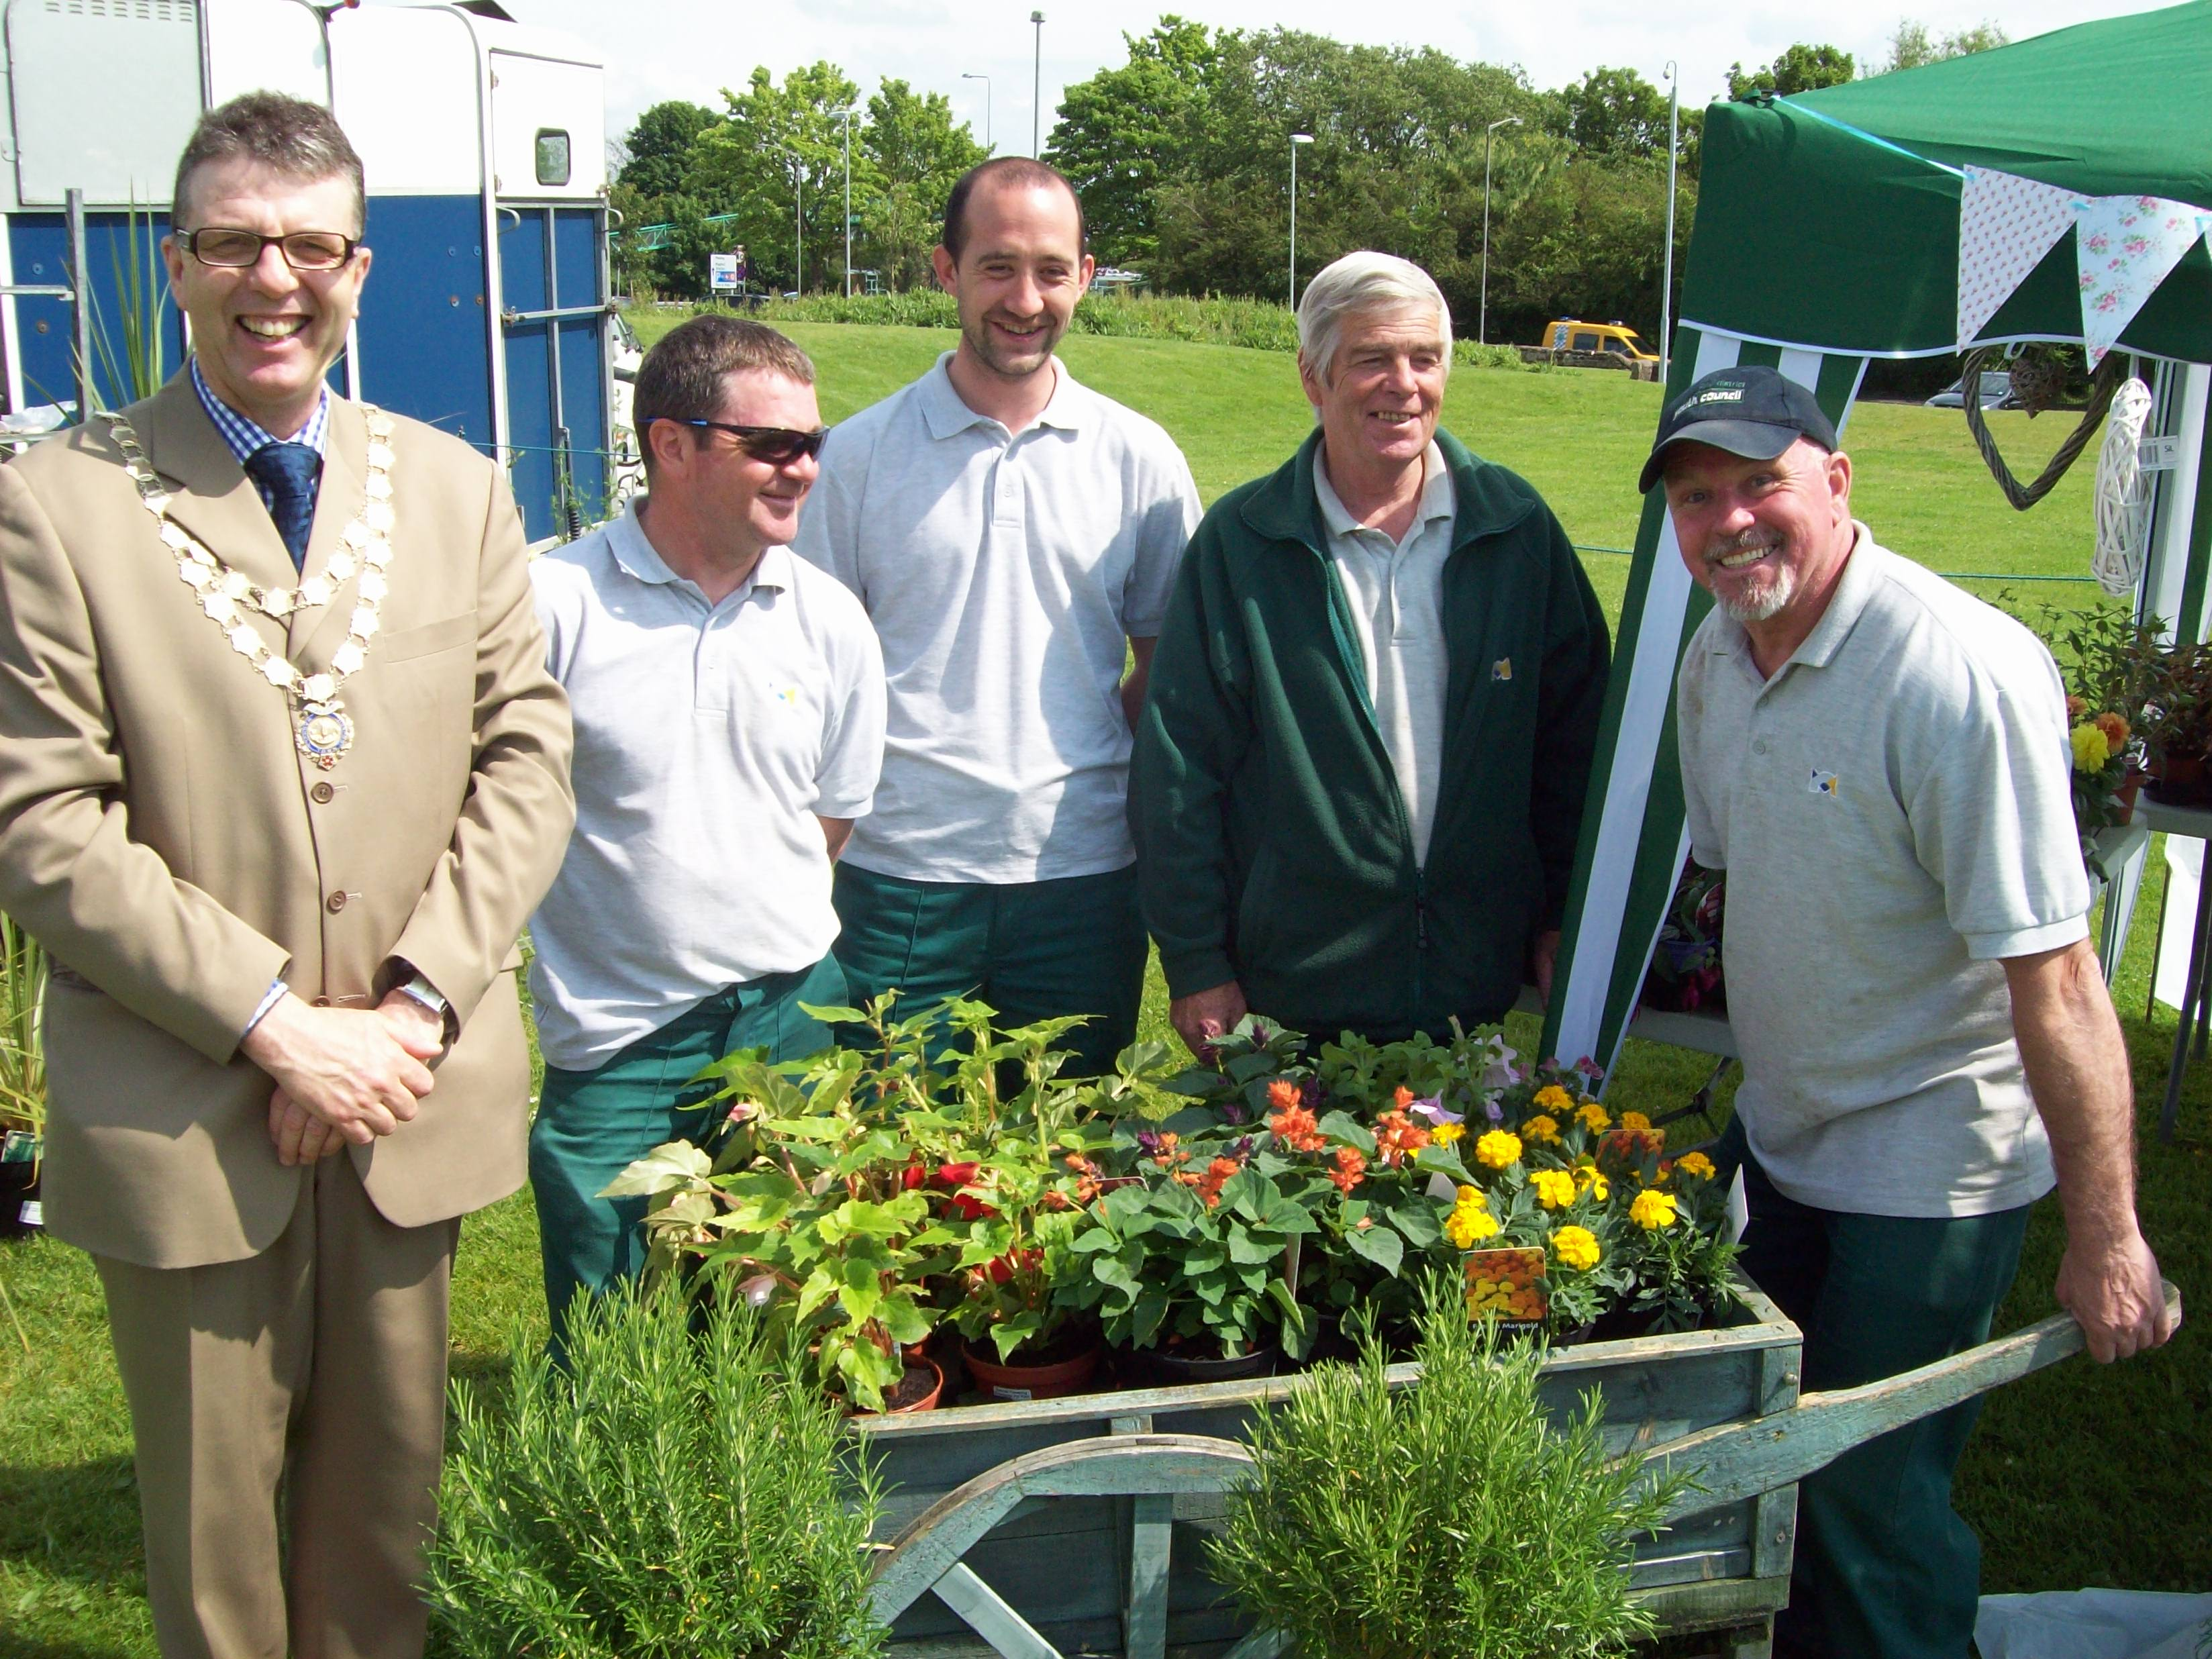 Mayor of Maghull, Labour's Cllr Steve Kermode with members of the Maghull Town Council ground staff.